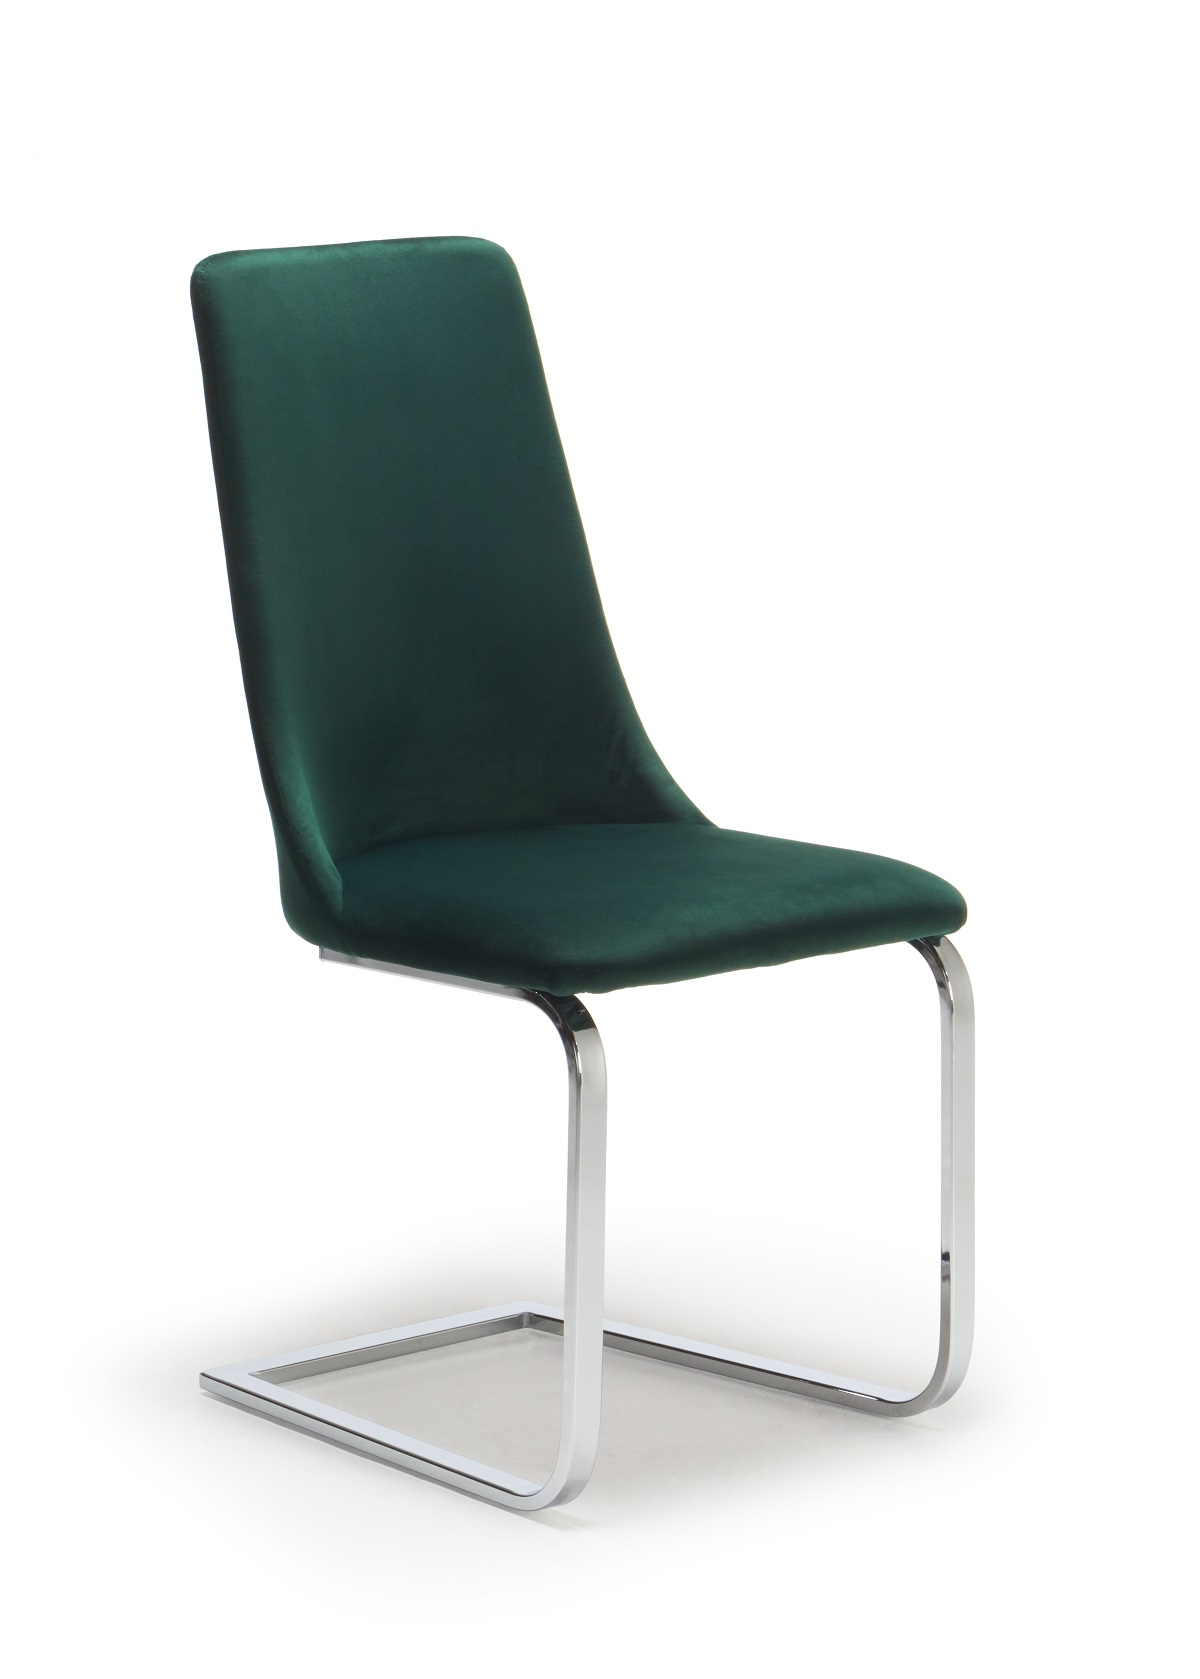 New Haven Sidechair - Green